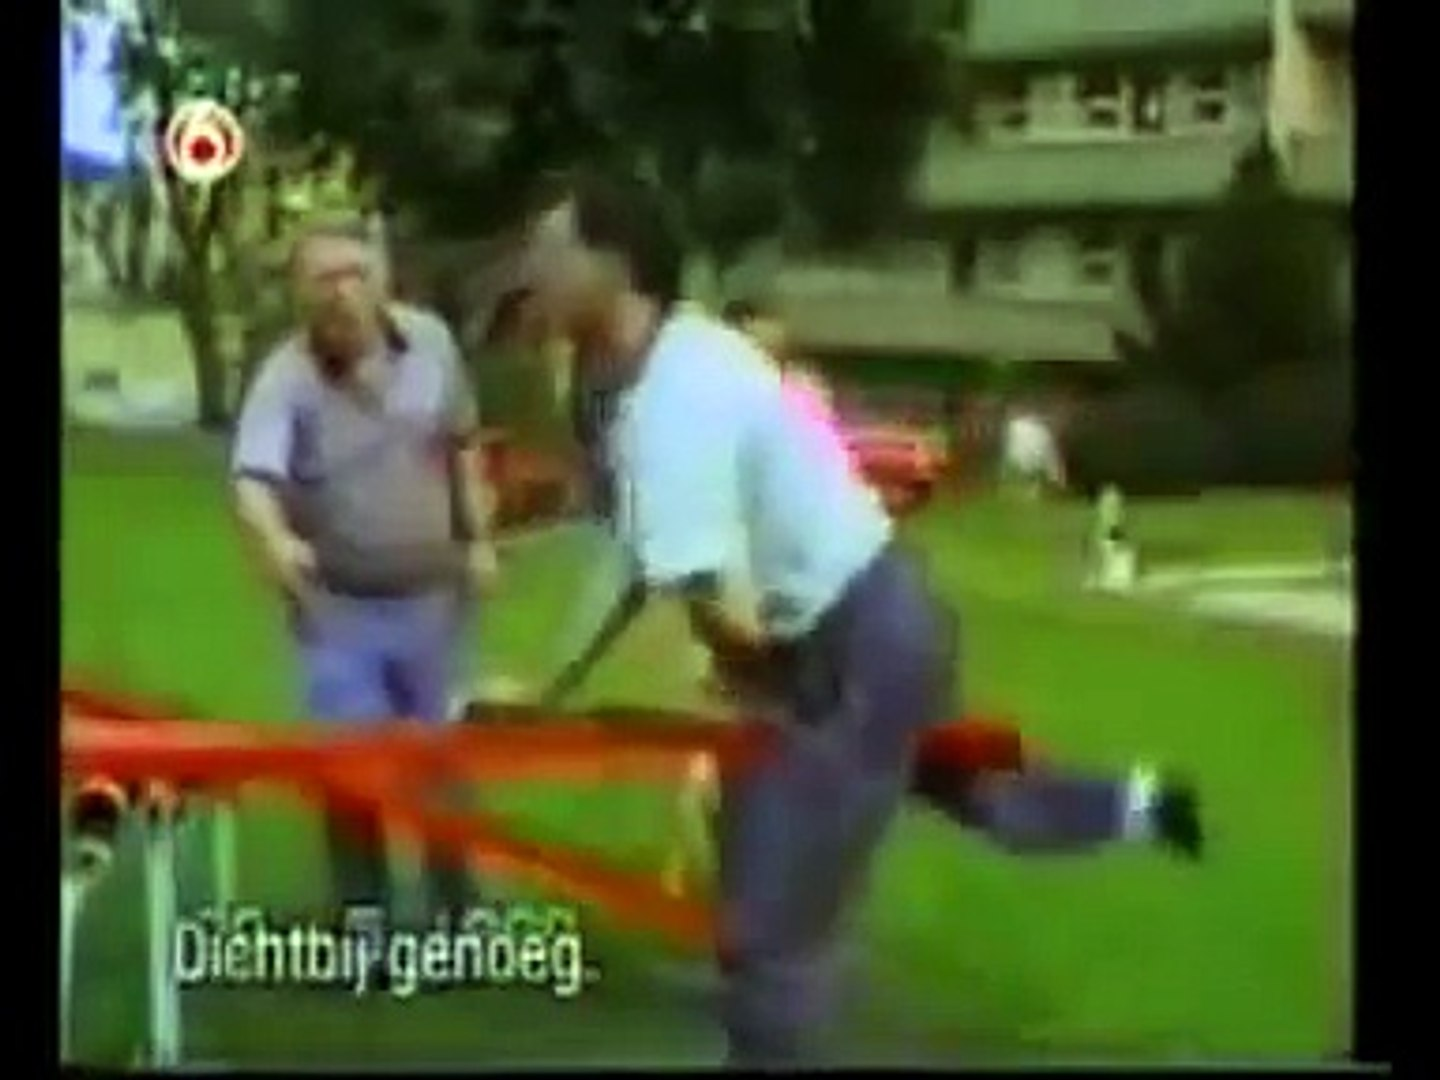 FUNNY PLAYGROUND ACCIDENTS AFV America's Funniest Home Videos - funny accidents in world